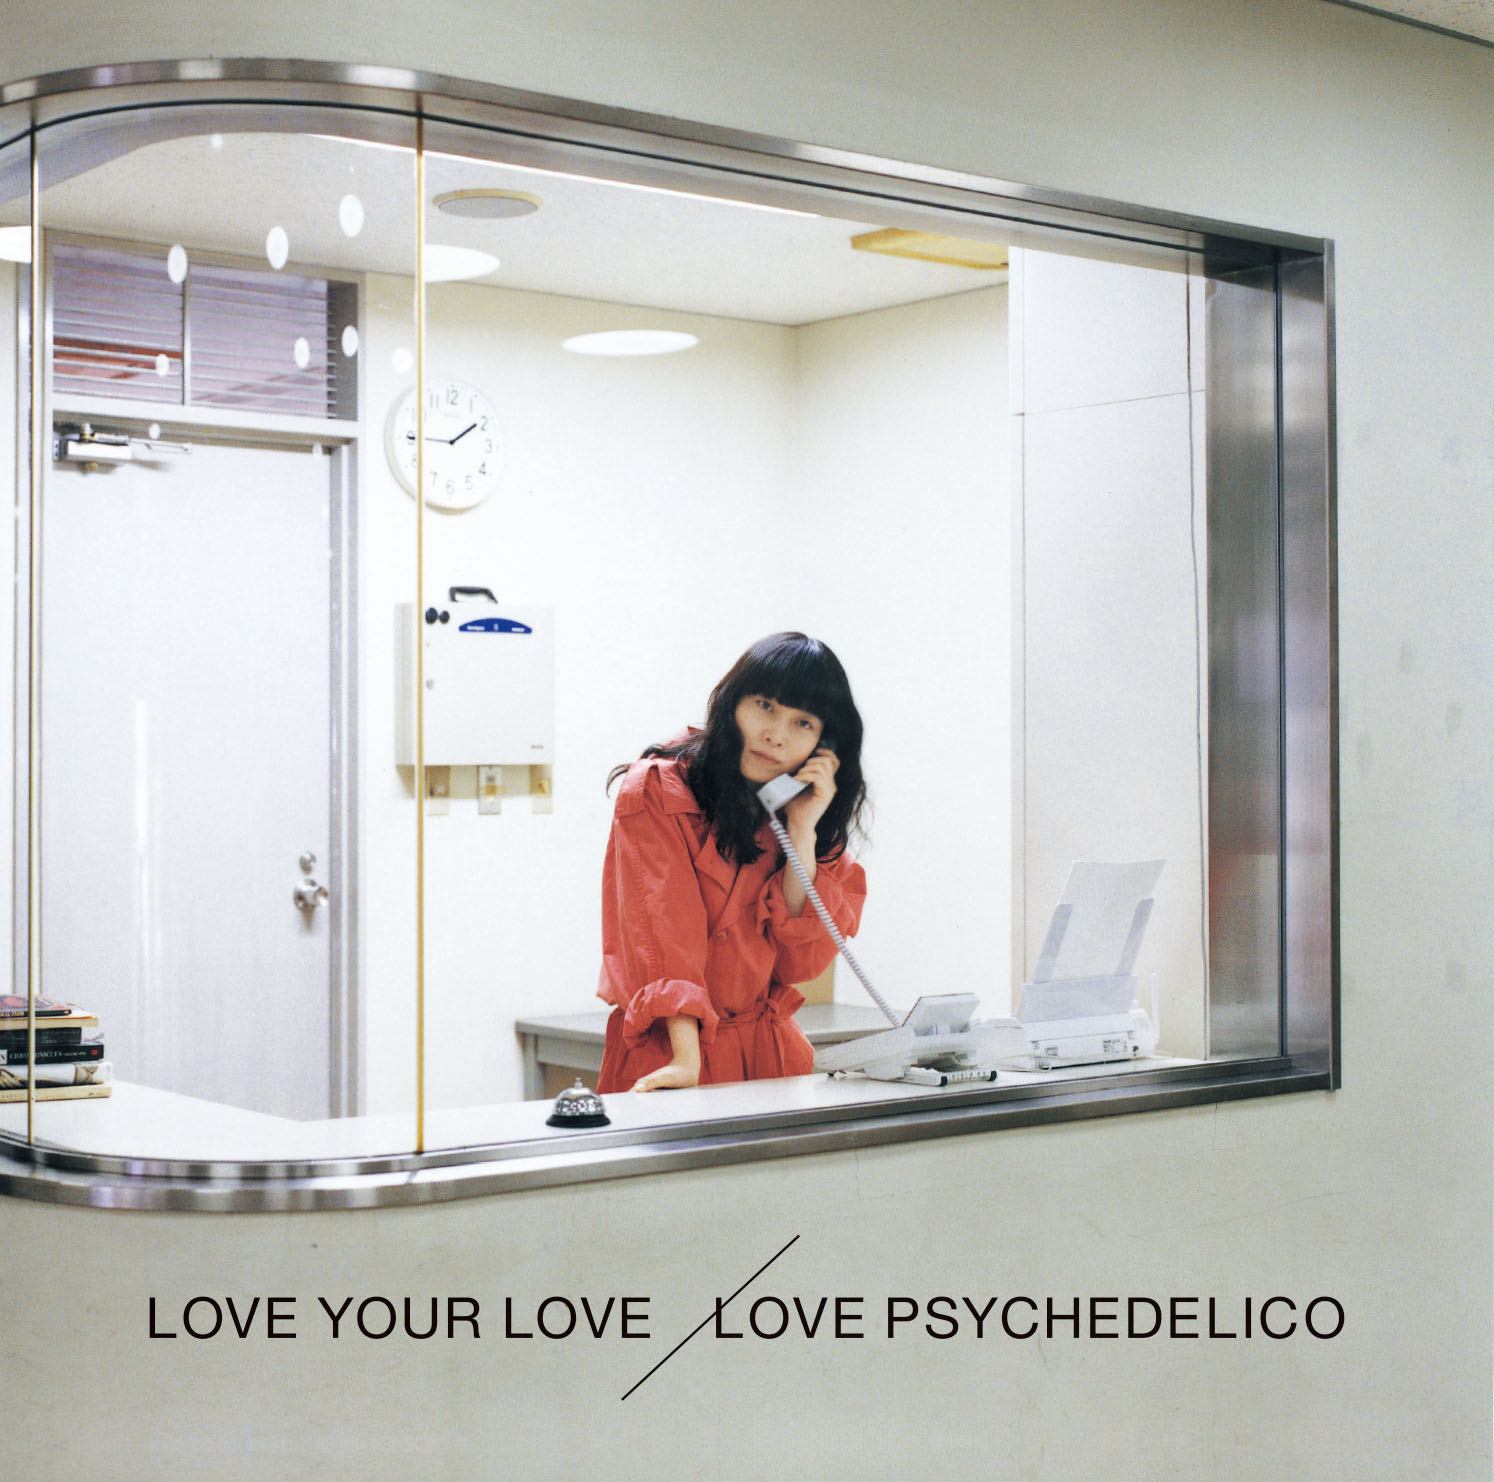 愛的魔幻-LOVE YOUR LOVE【2CD】